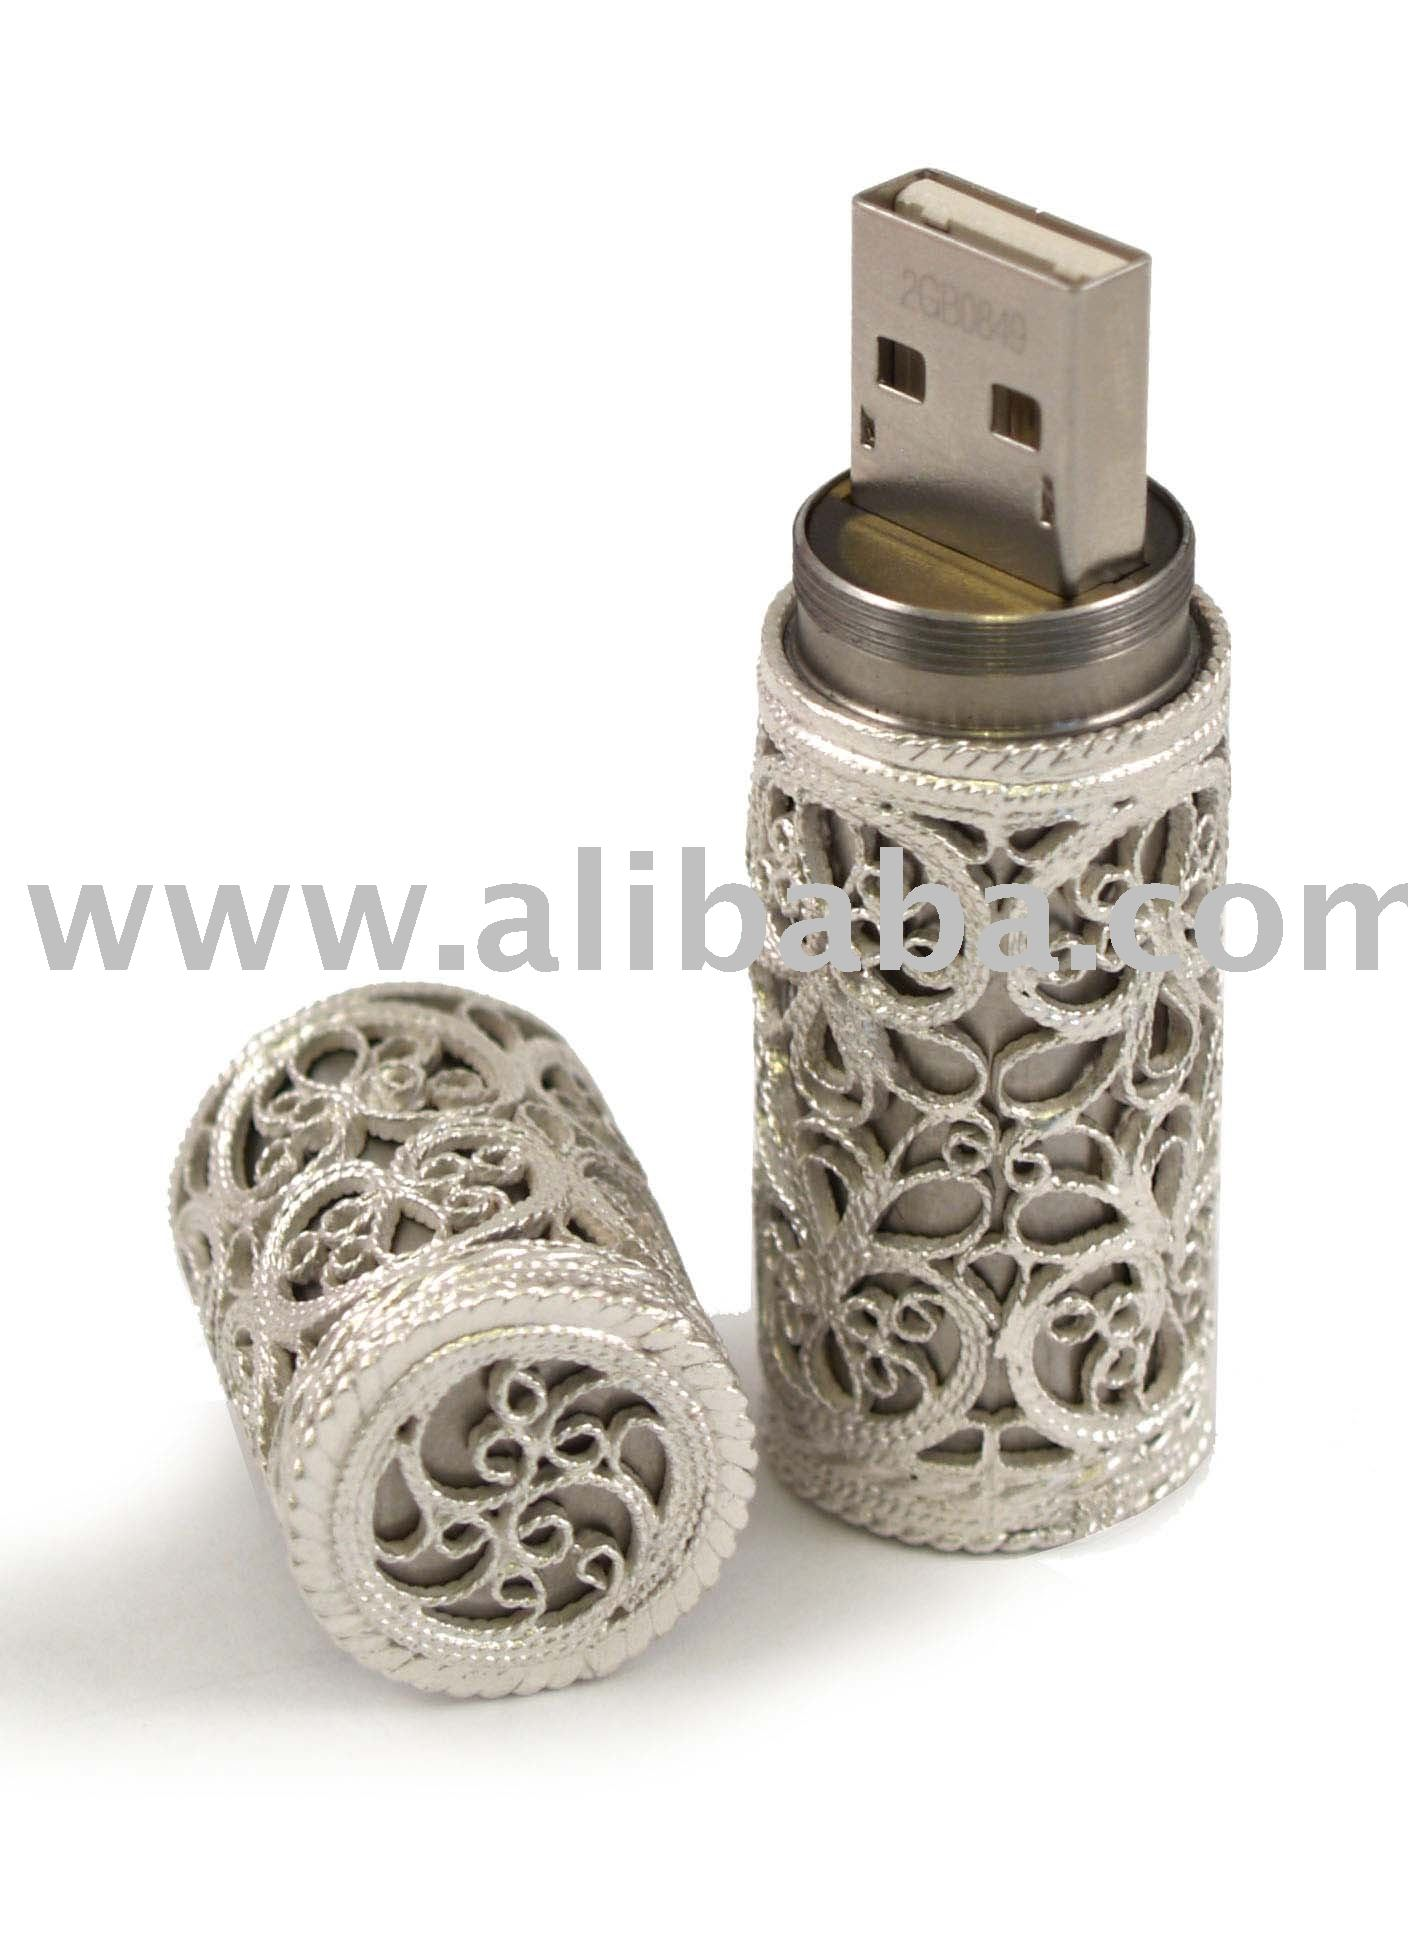 Exclusive Hand Made USB Drive